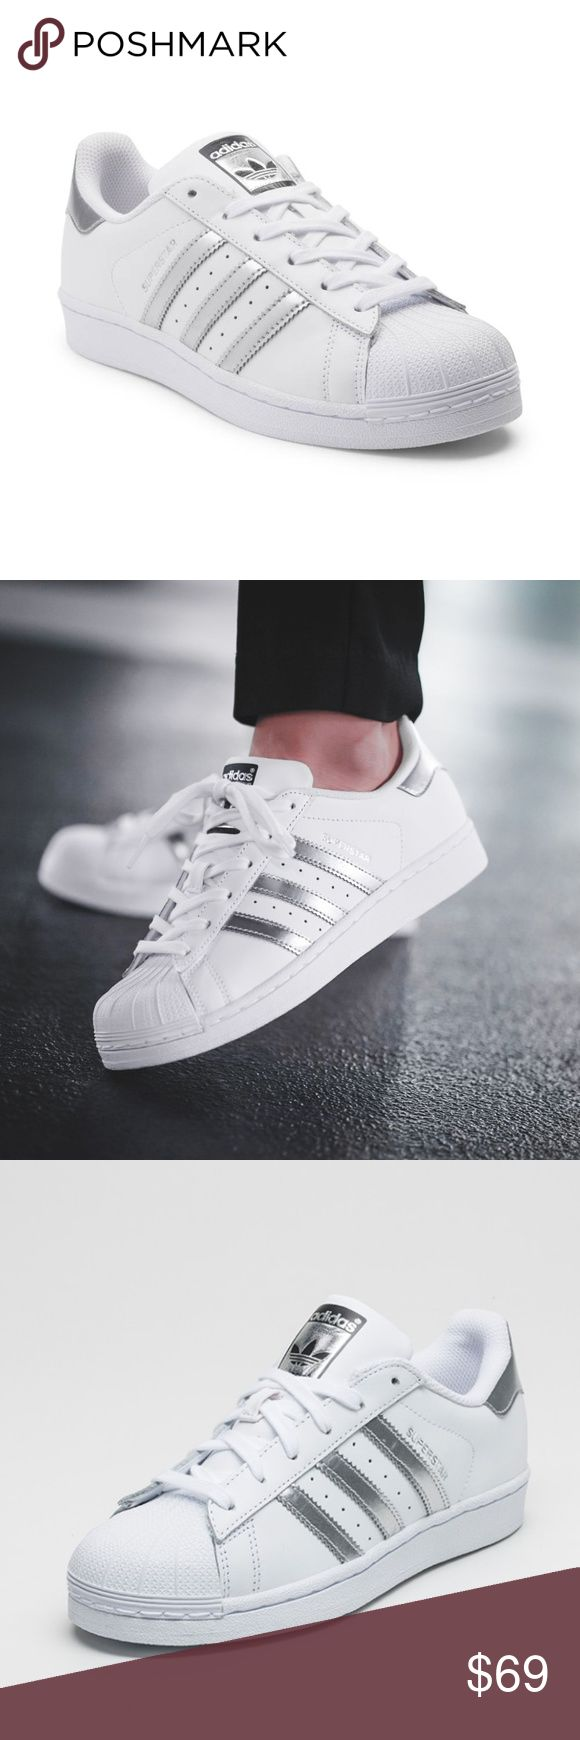 ADIDAS Superstar Original Fashion Sneakers NIB! In White/Silver   *Classic sneakers with three stripes and foil print  *Leather and rubber upper  *Shell toe  *Lace-up vamp *Metallic heel patch  *Rubber sole  ❌NO TRADES  I❤️Bundles ❤️REASONABLE OFFERS ONLY PLEASE❤️ adidas Shoes Sneakers